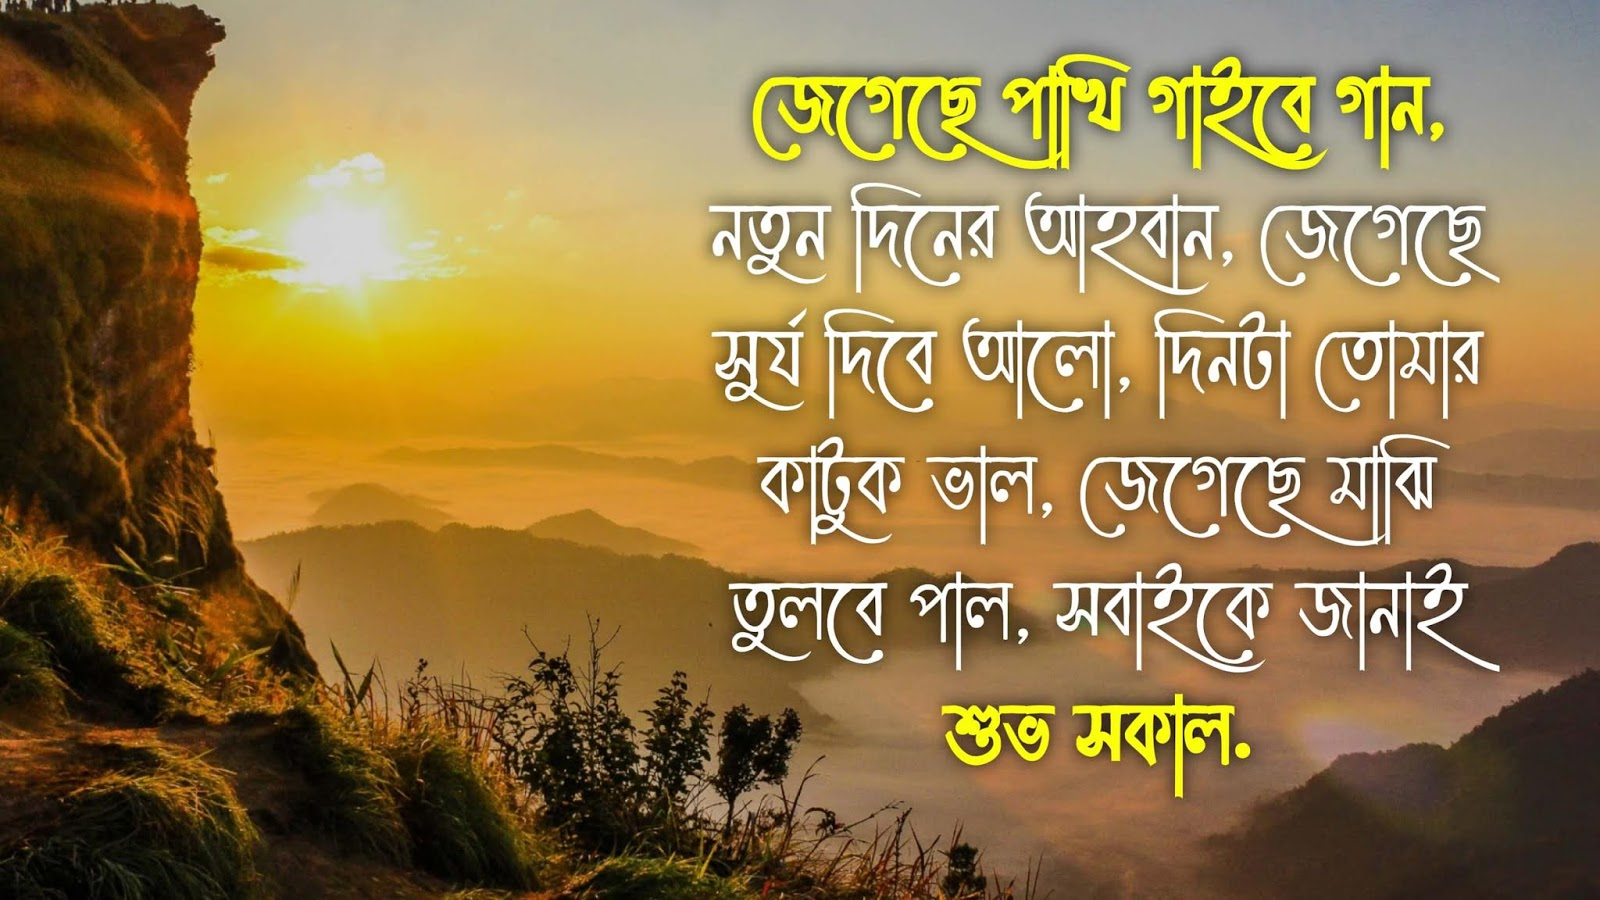 good morning messages in bengali